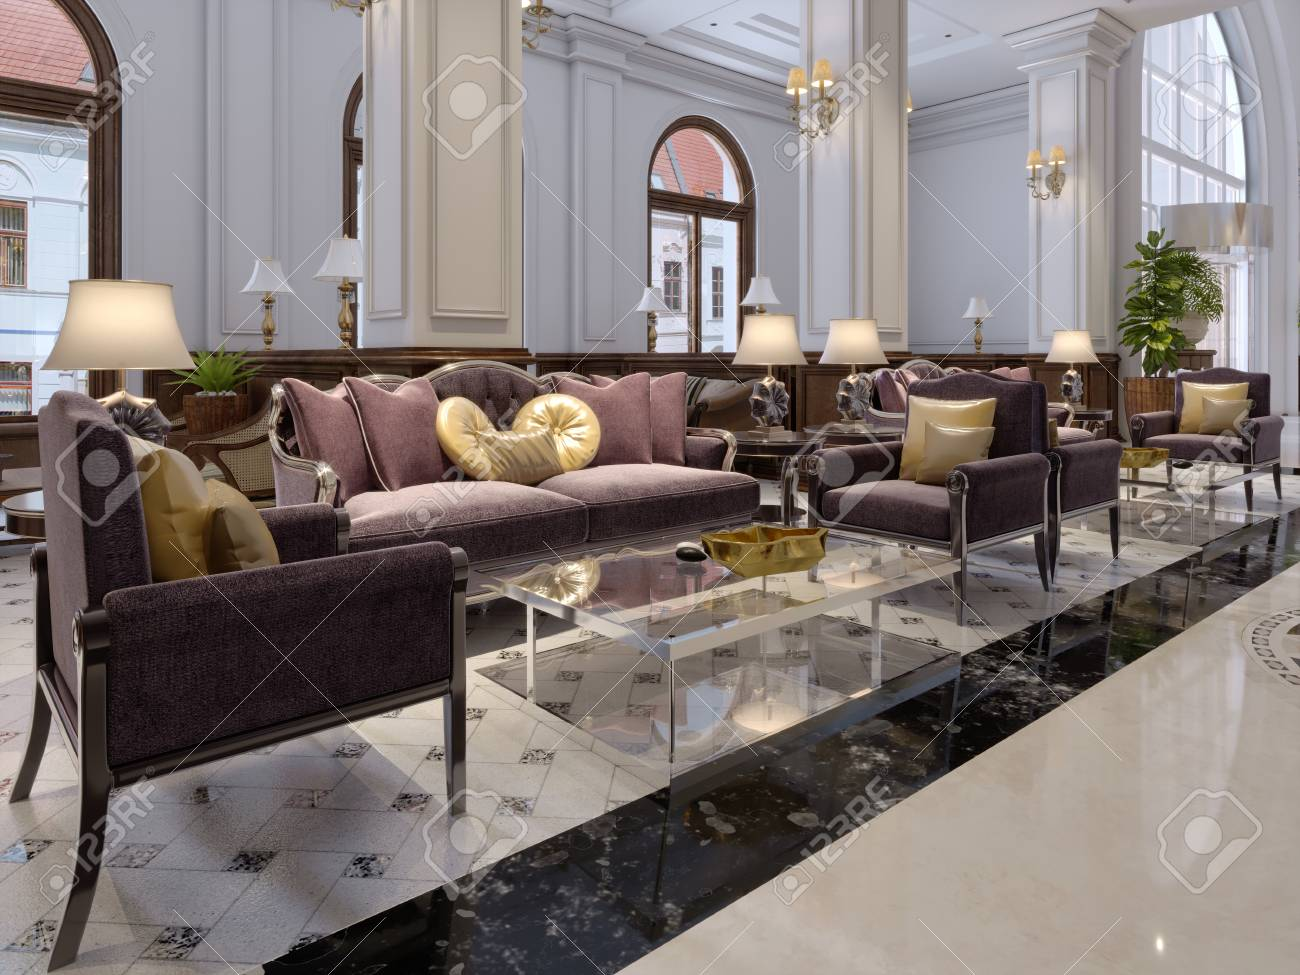 Hotel lobby in classic style with luxurious art deco furniture